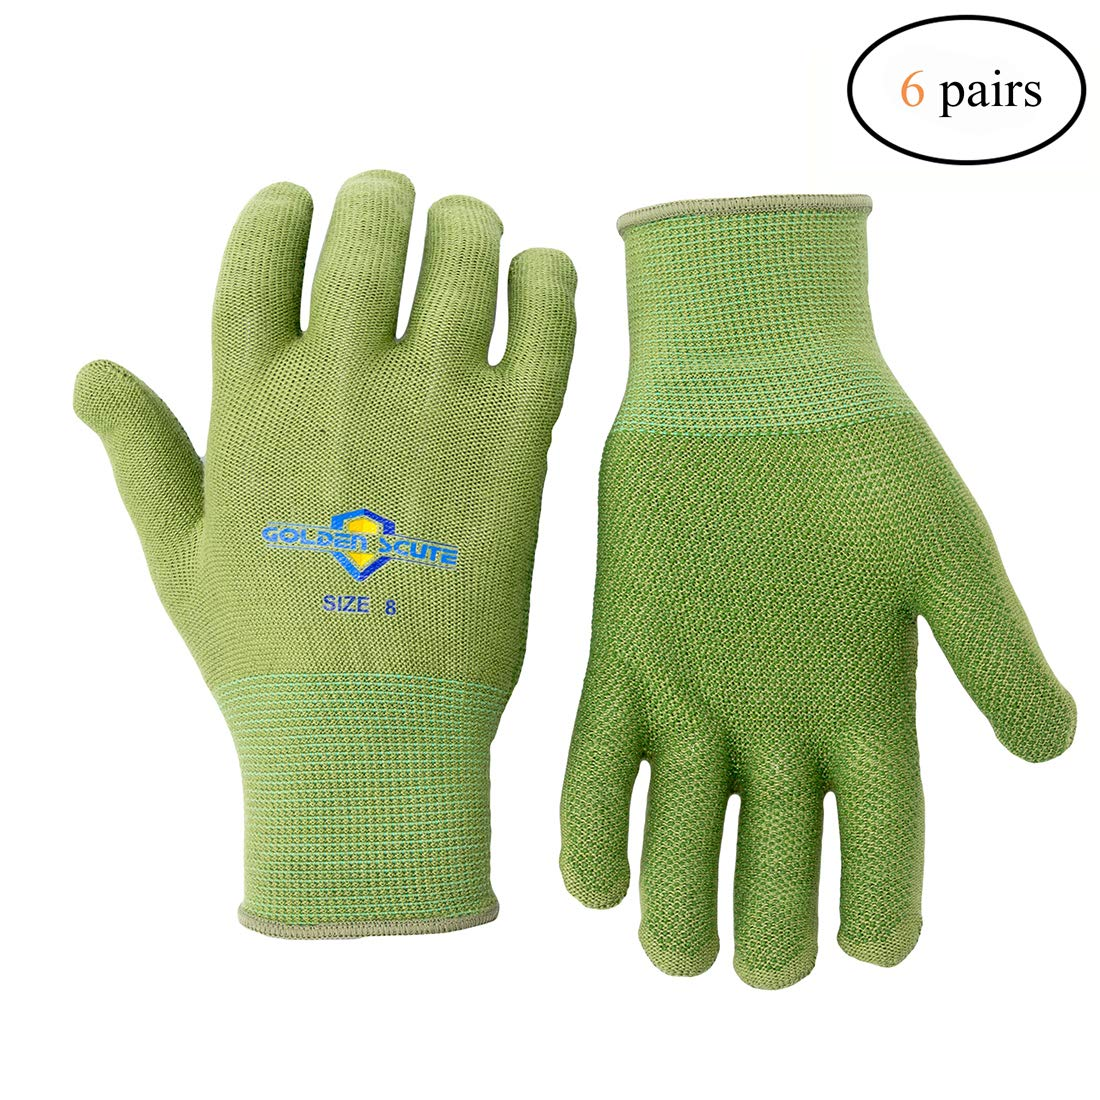 Golden Scute Bamboo Dotted Working Gloves, Breathable, Keep Hands Cool, Sweat Proof, Comfortable Safety Gloves for Light Work Gardening, Fishing, Restoration Work, 6 Pairs (Medium/Size 8)